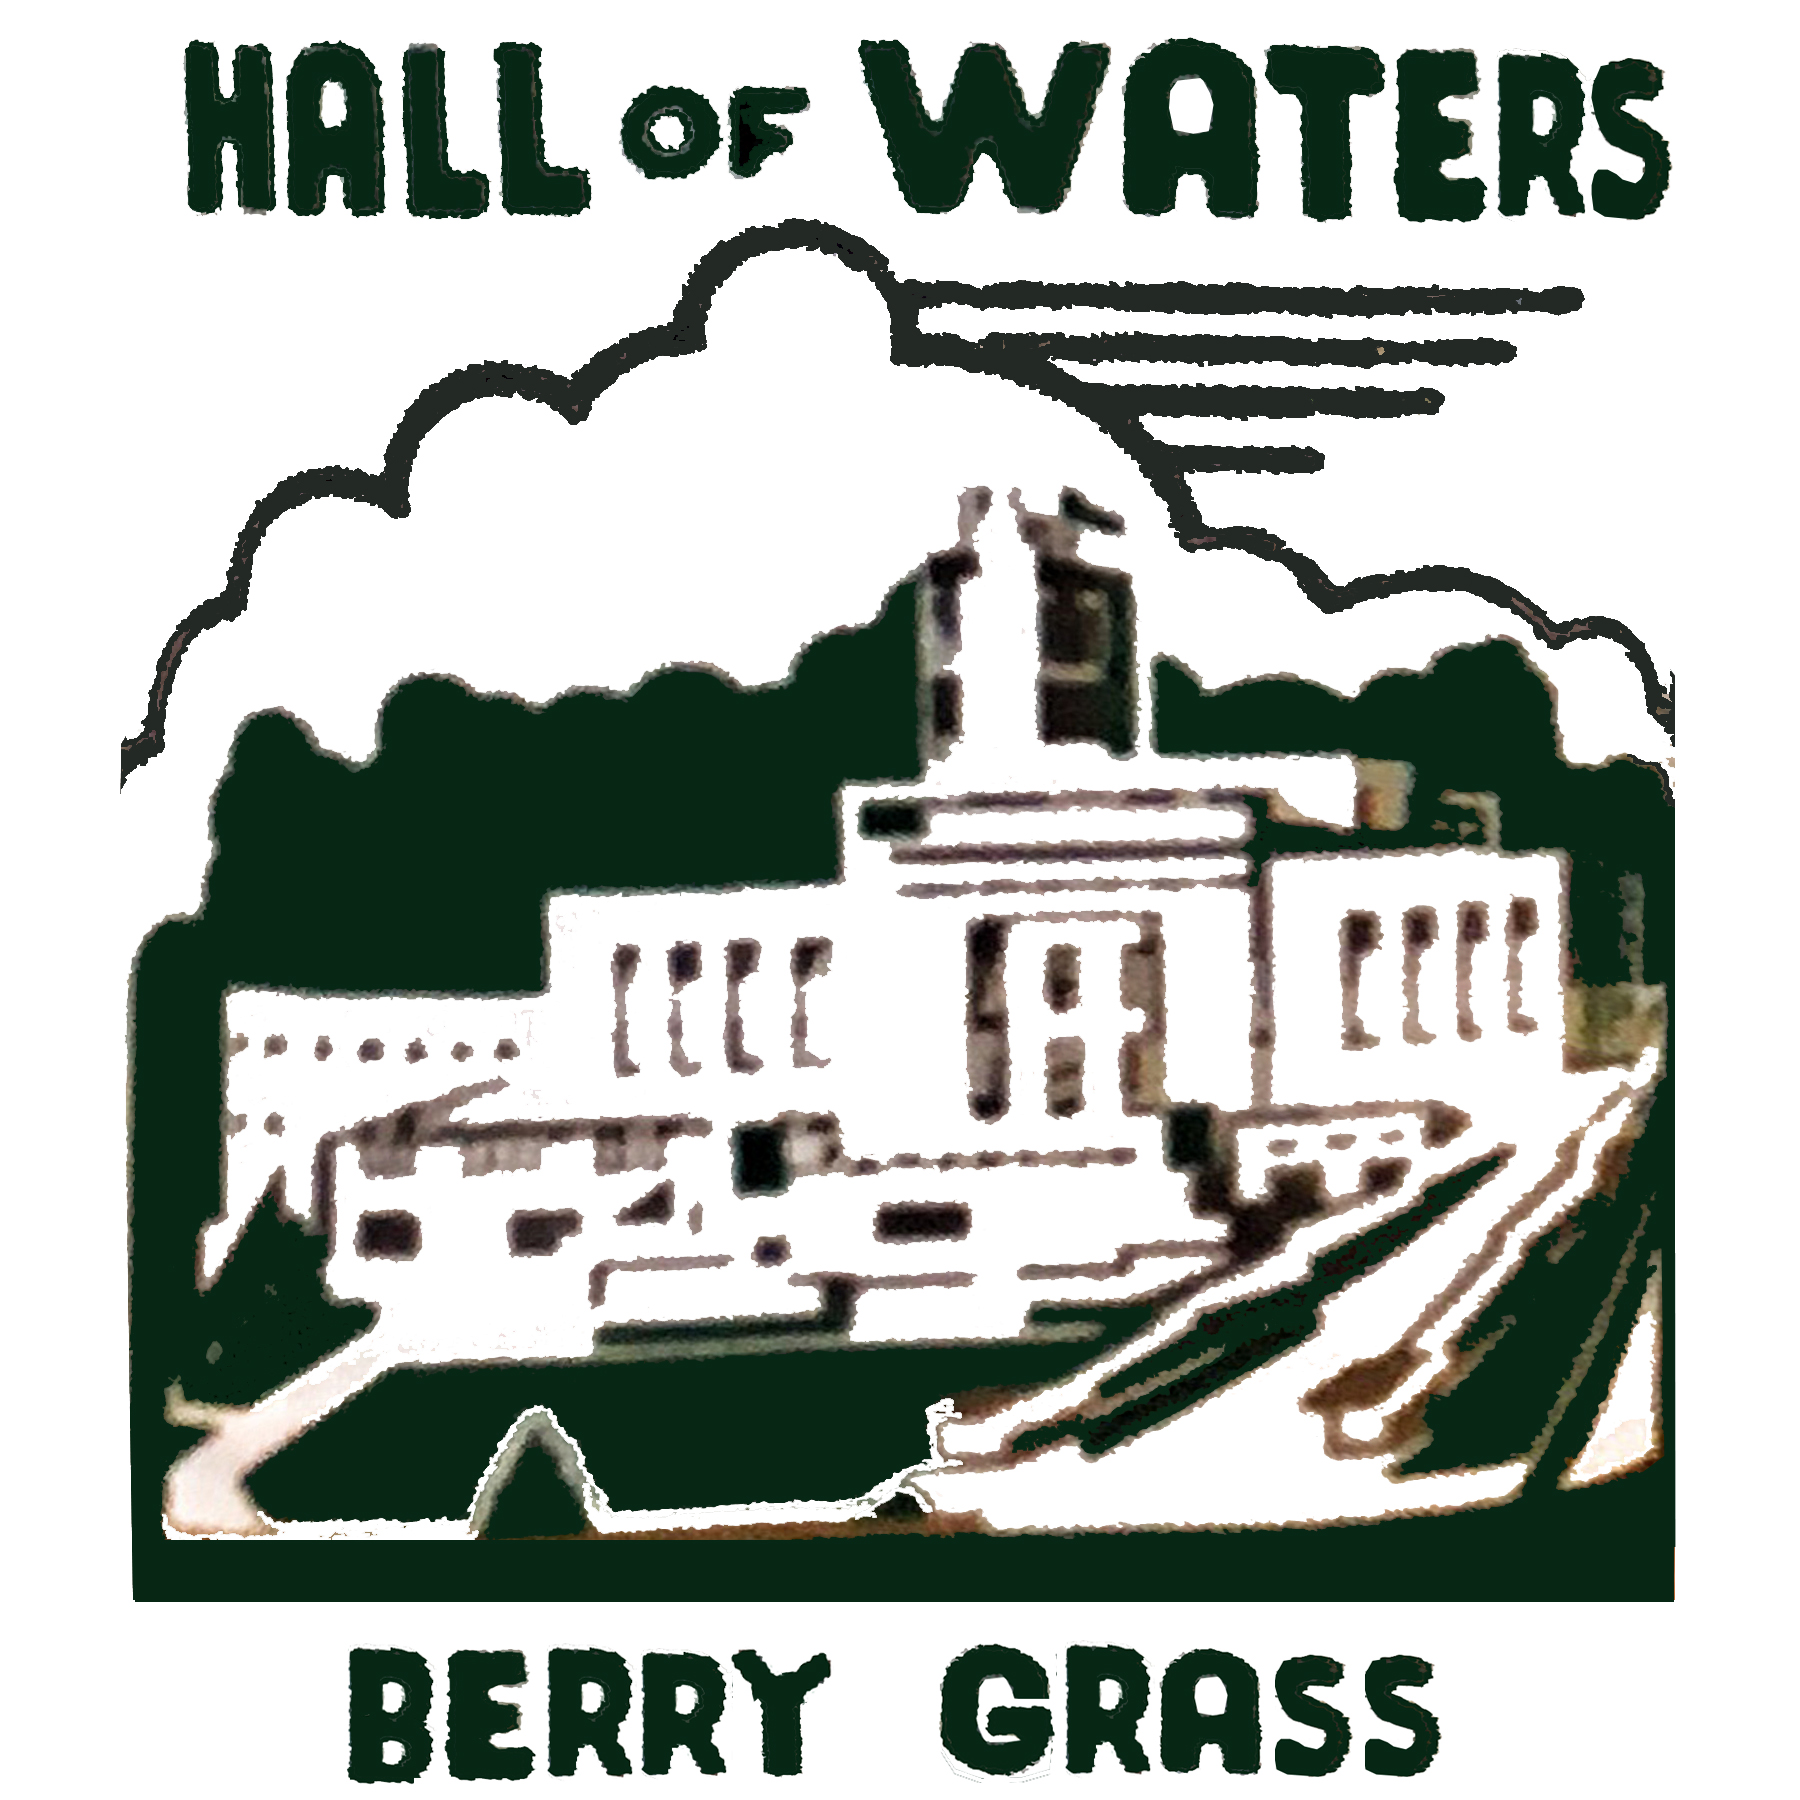 Order now at The Operating System! - (or wherever you get your books online)HALL OF WATERS is an attempt to demythologize the rural American Midwest through the specific example of the author's hometown, Excelsior Springs, MO. Through lyric essay & memoir, the book seeks to examine & undercut the inherent settler white supremacy of the Midwestern small-town, to deromanticize the nostalgia for land & place that is the hallmark of Midwestern art, & to think about what it was like growing up queer & trans in such a toxic environment.